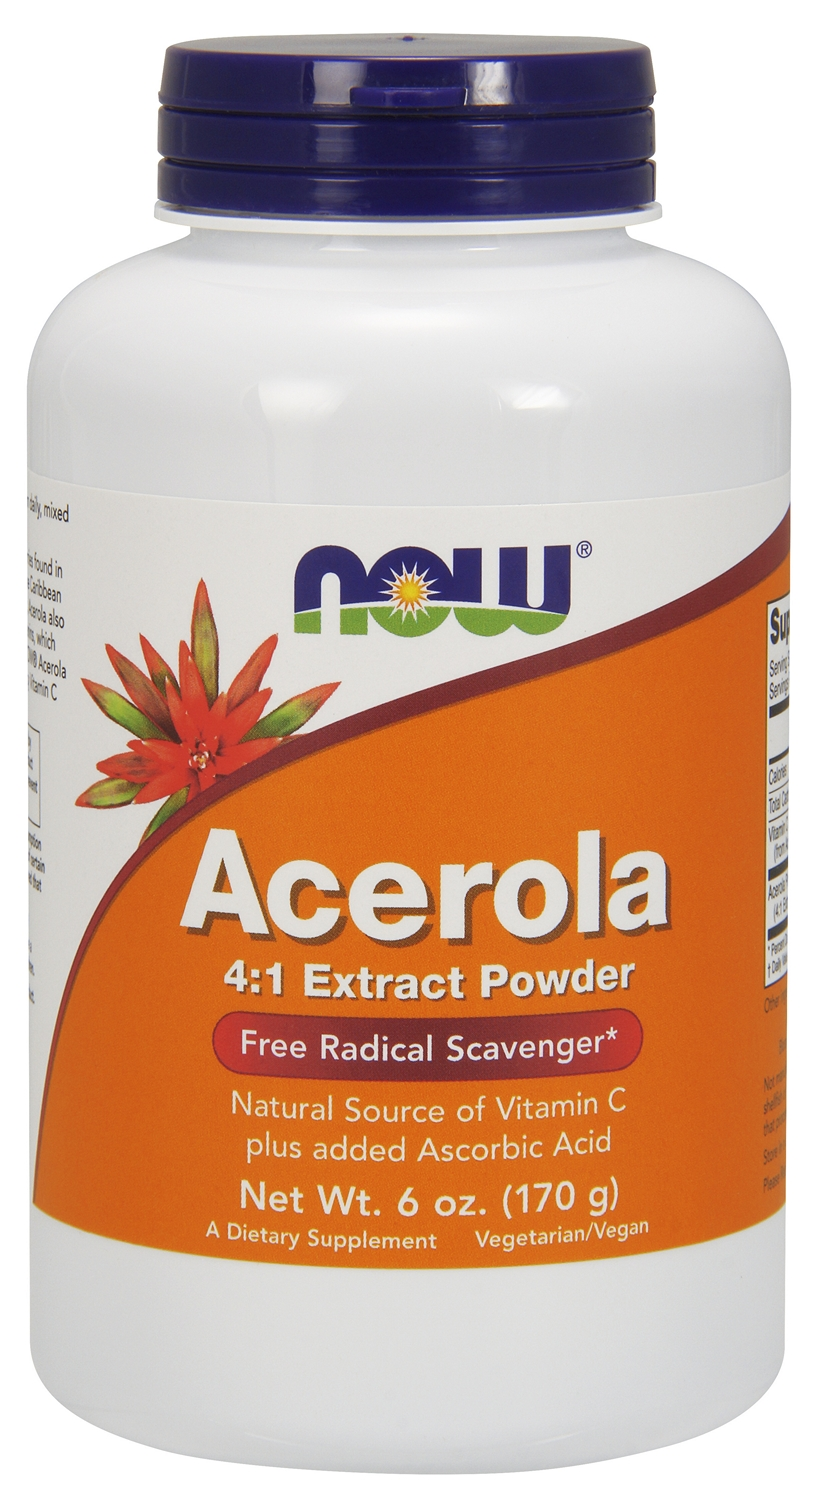 Acerola 4:1 Extract Powder 6 oz (171 g) by NOW